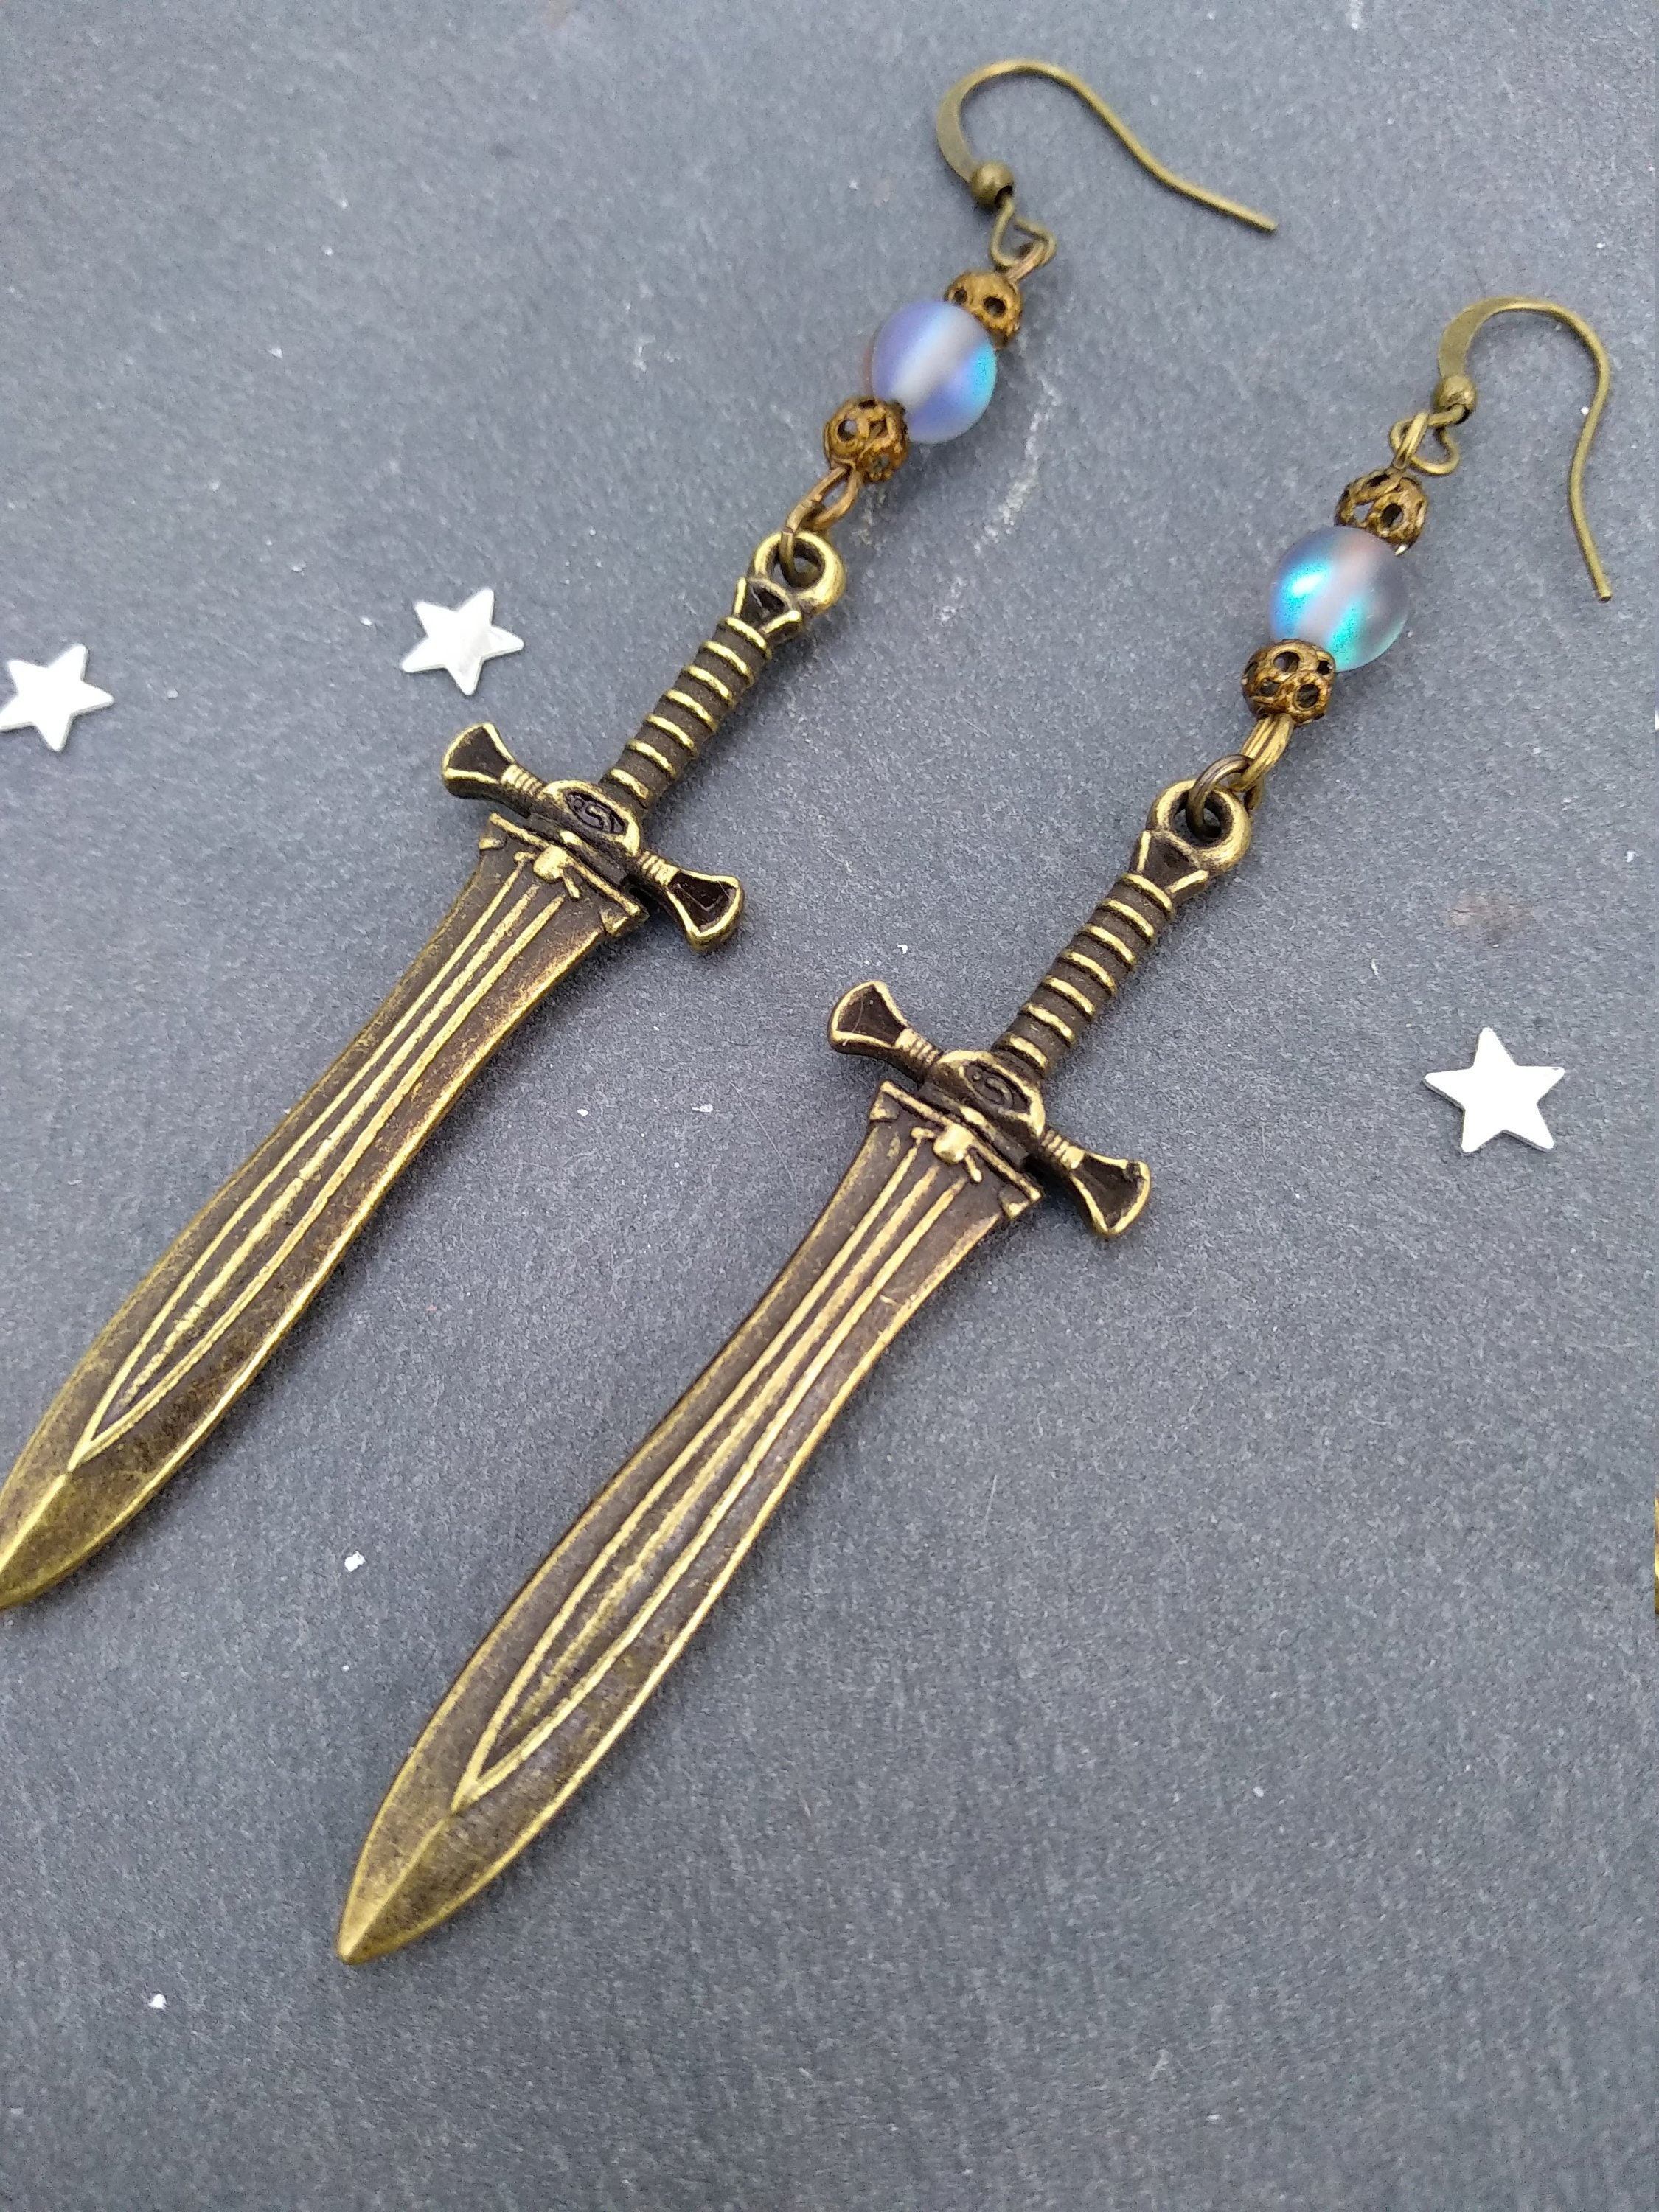 Dual Daggers Cosplay Jewelry Water Elemental Magical Titanium Earrings Blue Silver Shock Wave Space Inspired Jewellery Sands of Time